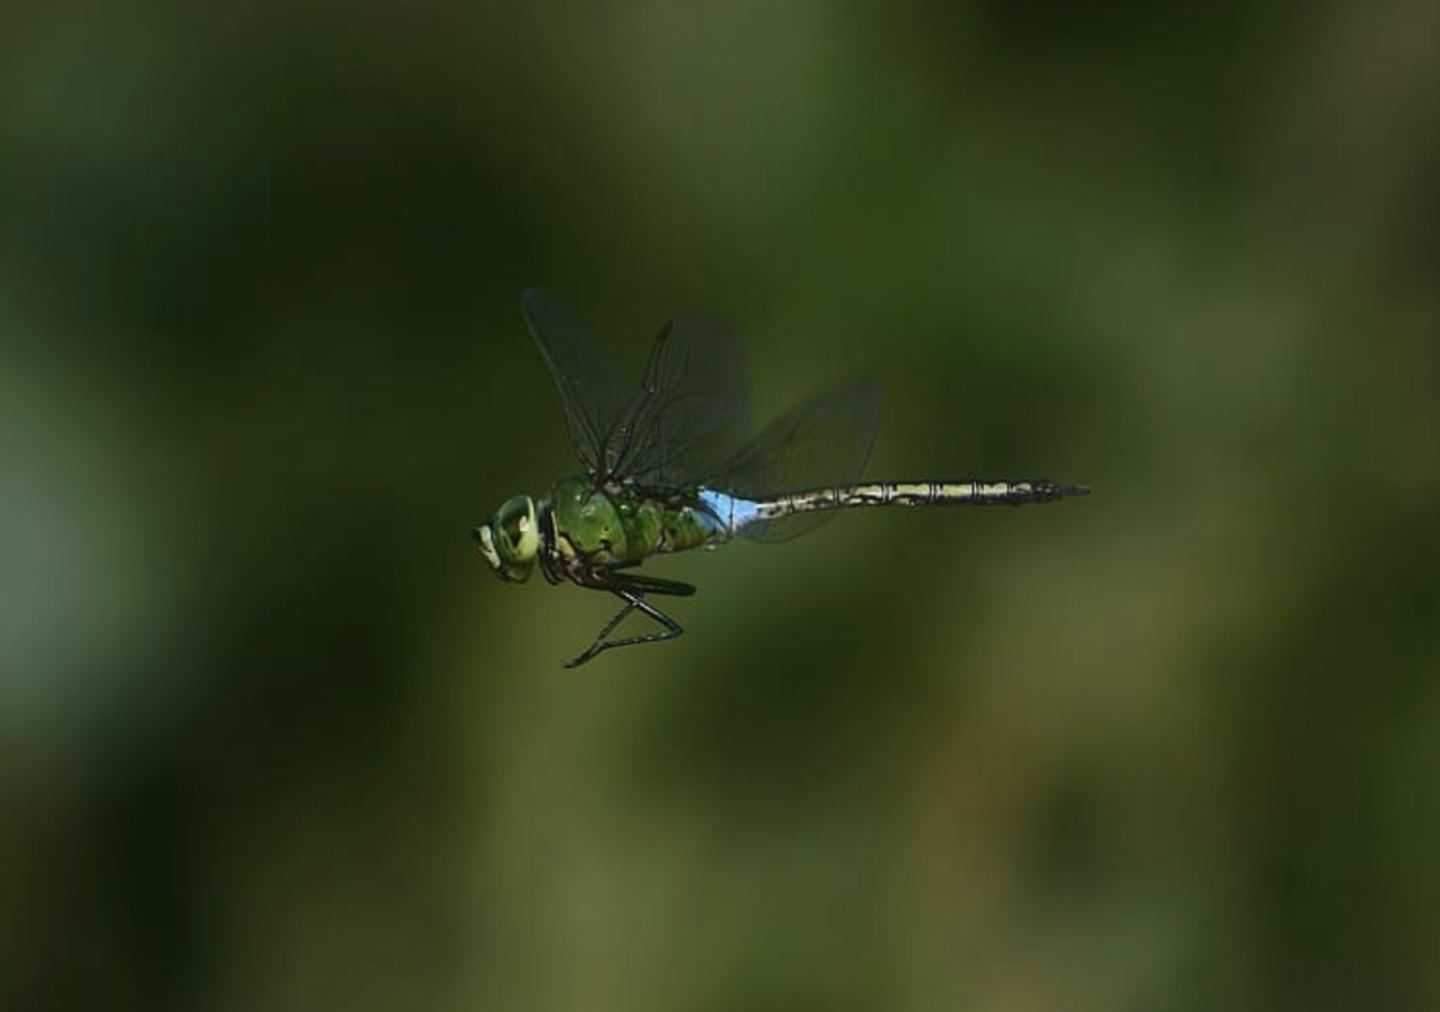 To See a Dragonfly's Wings in Flight Clearly Requires Keen Visual Acuity